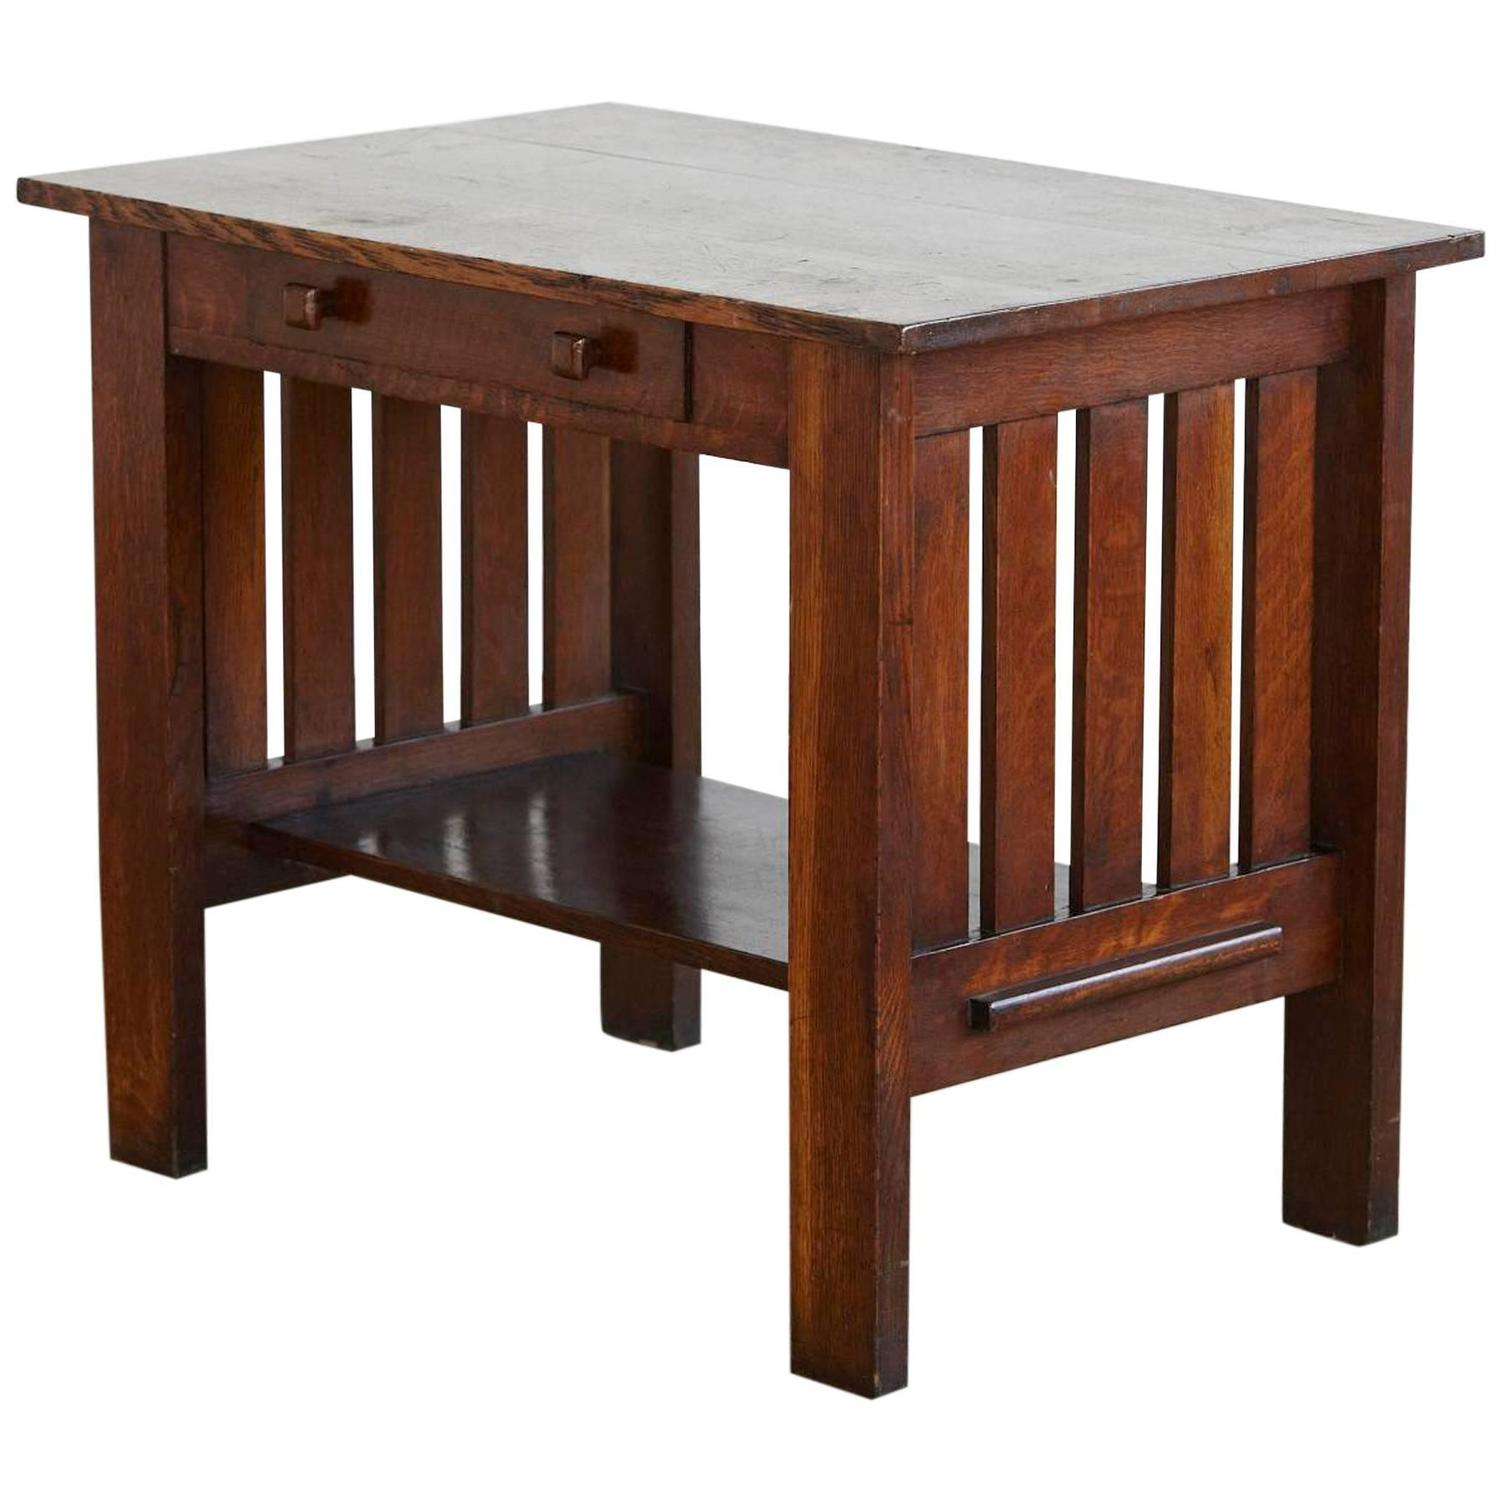 table from station wooden tables library laminate concepts creative work heritage